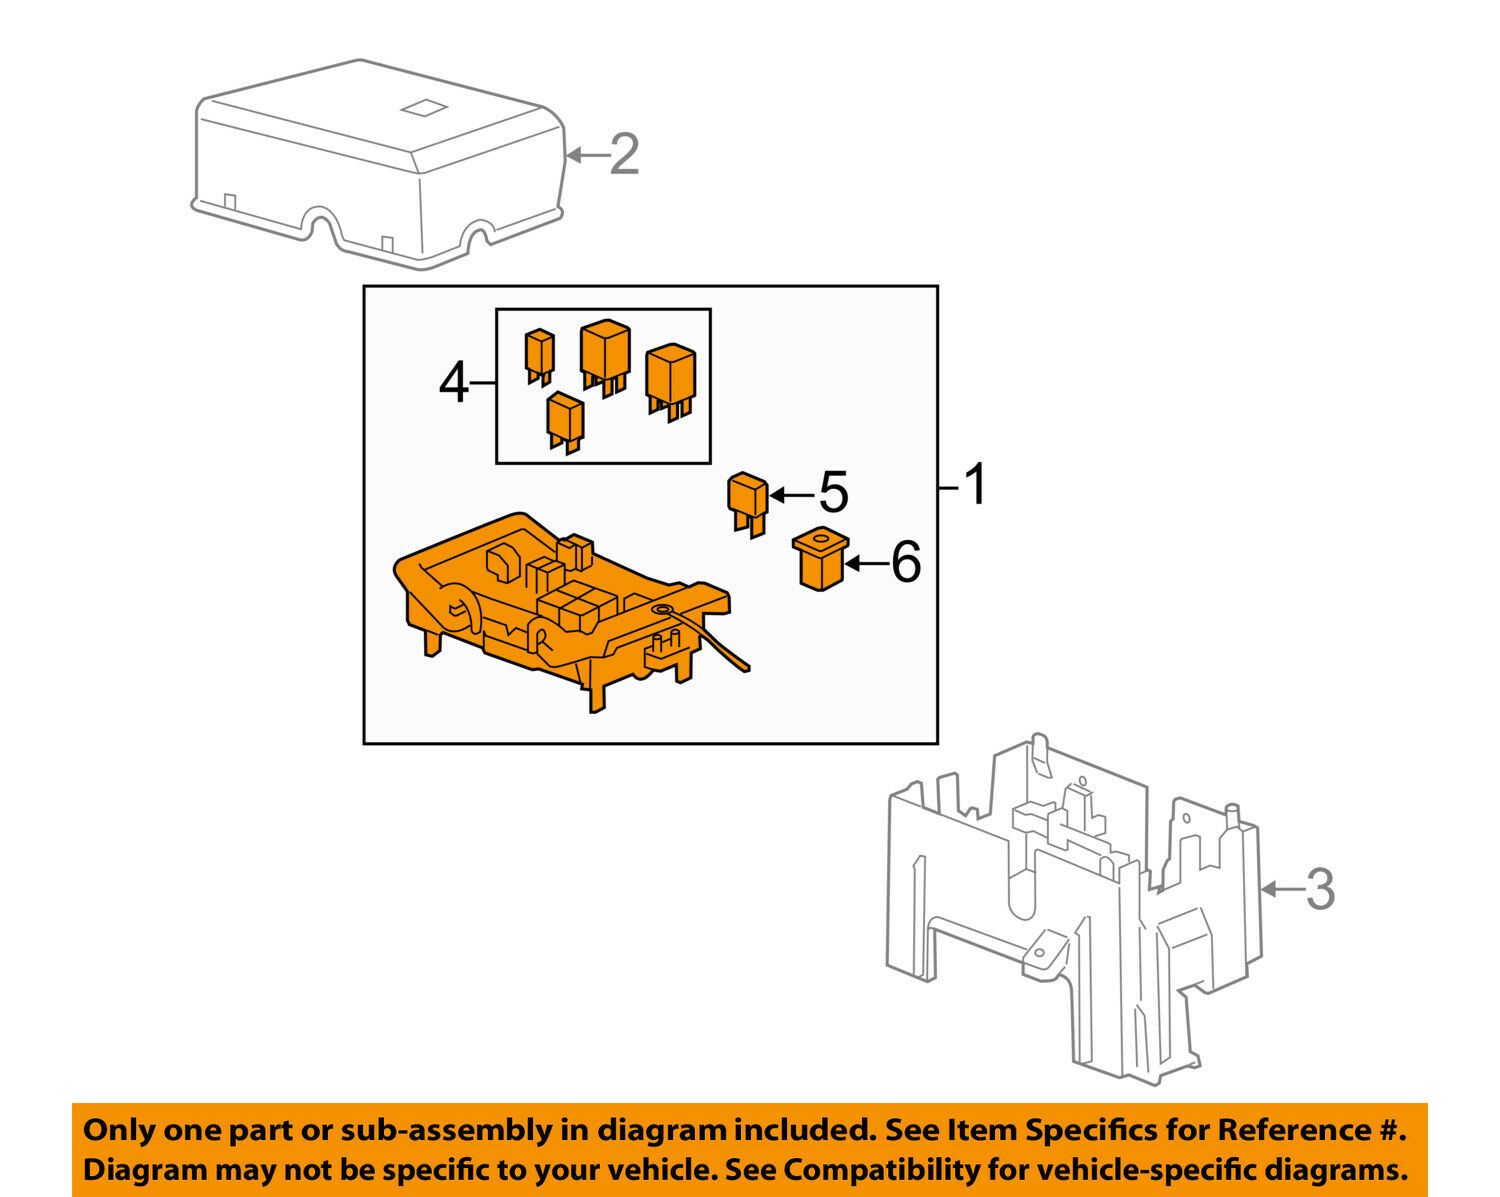 Gm Oem Fuse Relay Junction Block 22798214 15692 Picclick Diagram 1 Of 2only Available